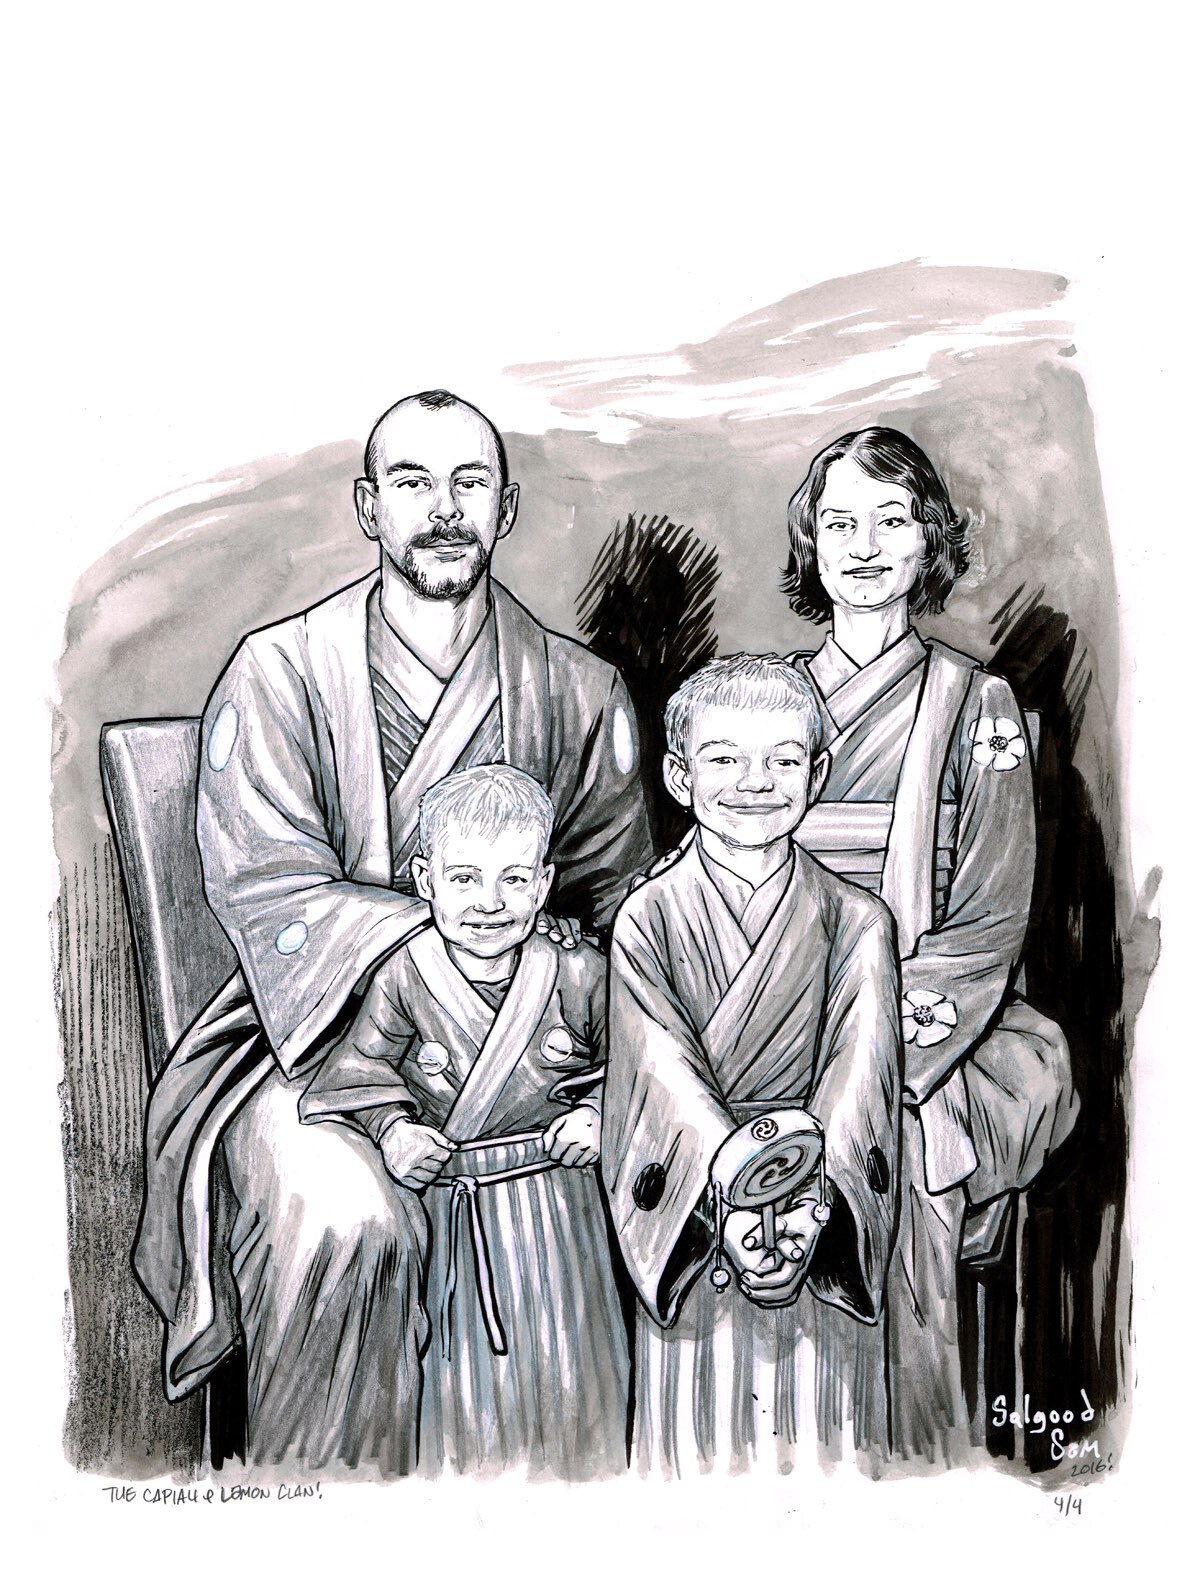 Family portrait commission in ink and wash.